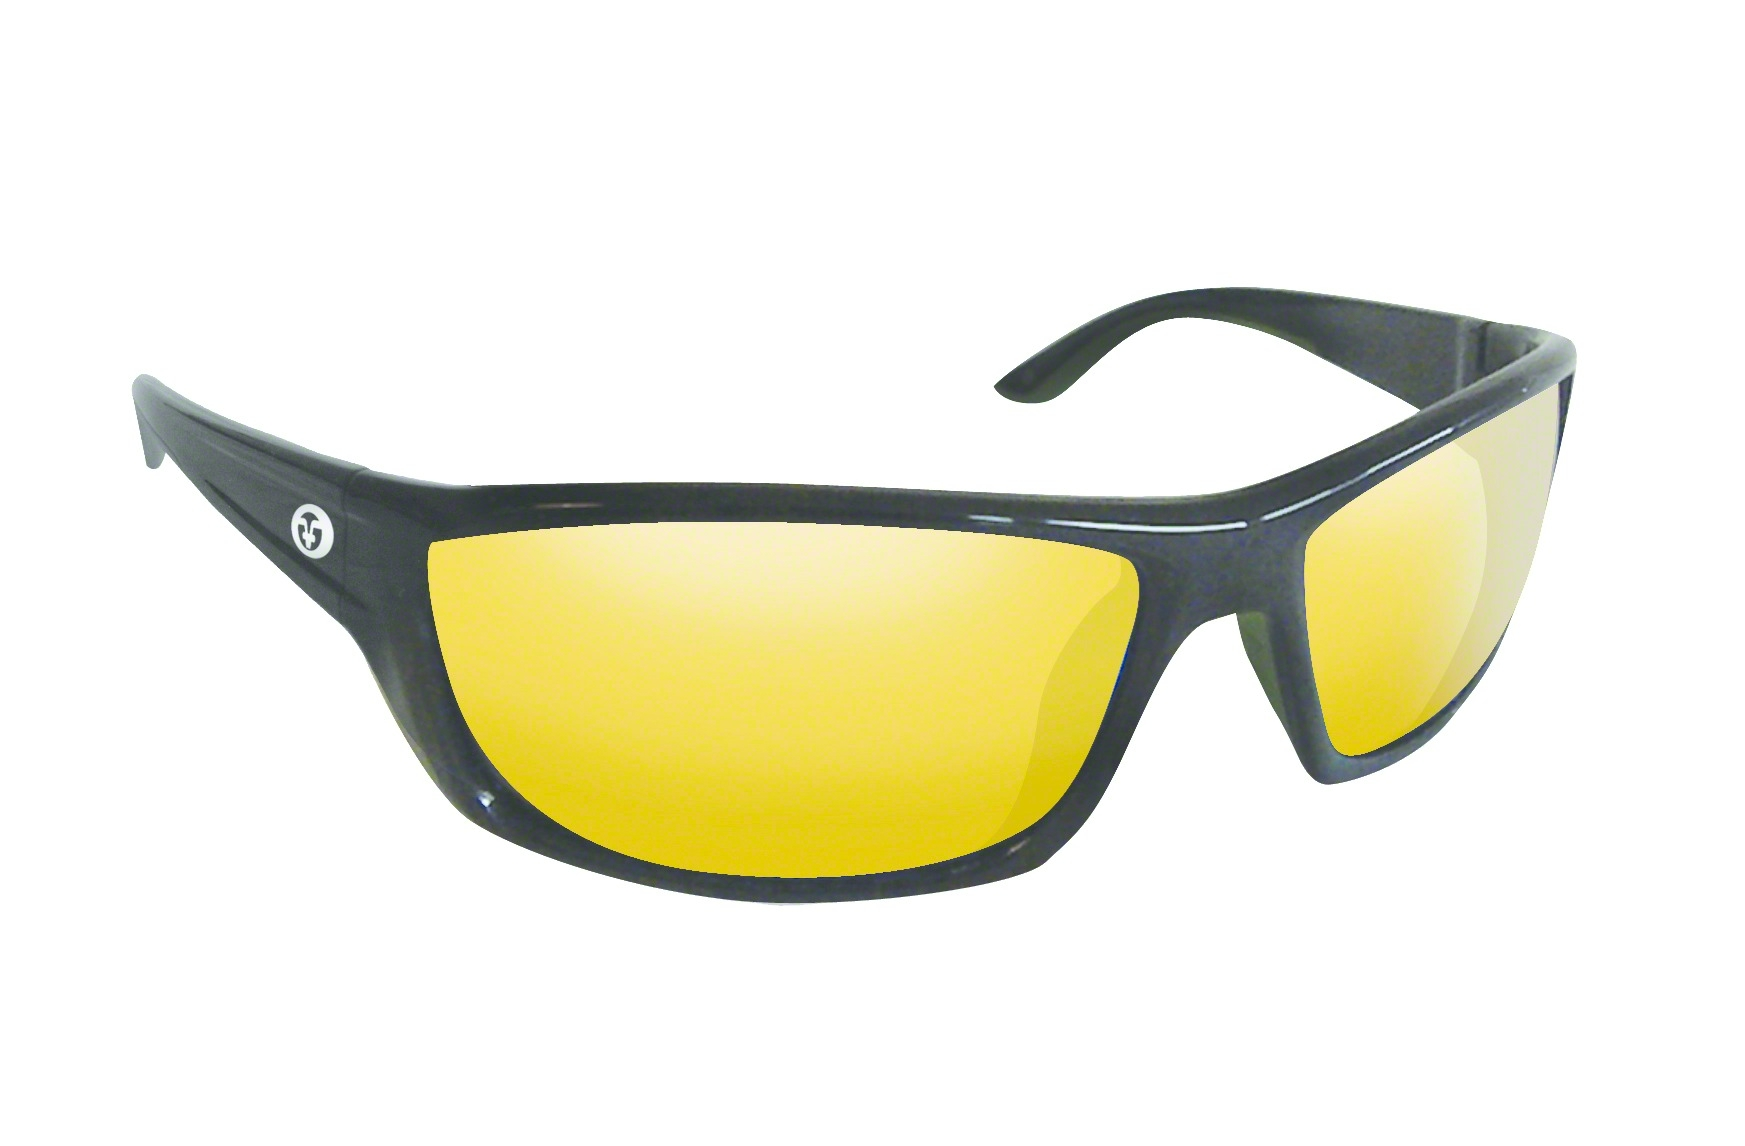 aba7d7030d2 FLYING FISHERMAN Buchanan Sunglasses Matte Black Yellow-Amber